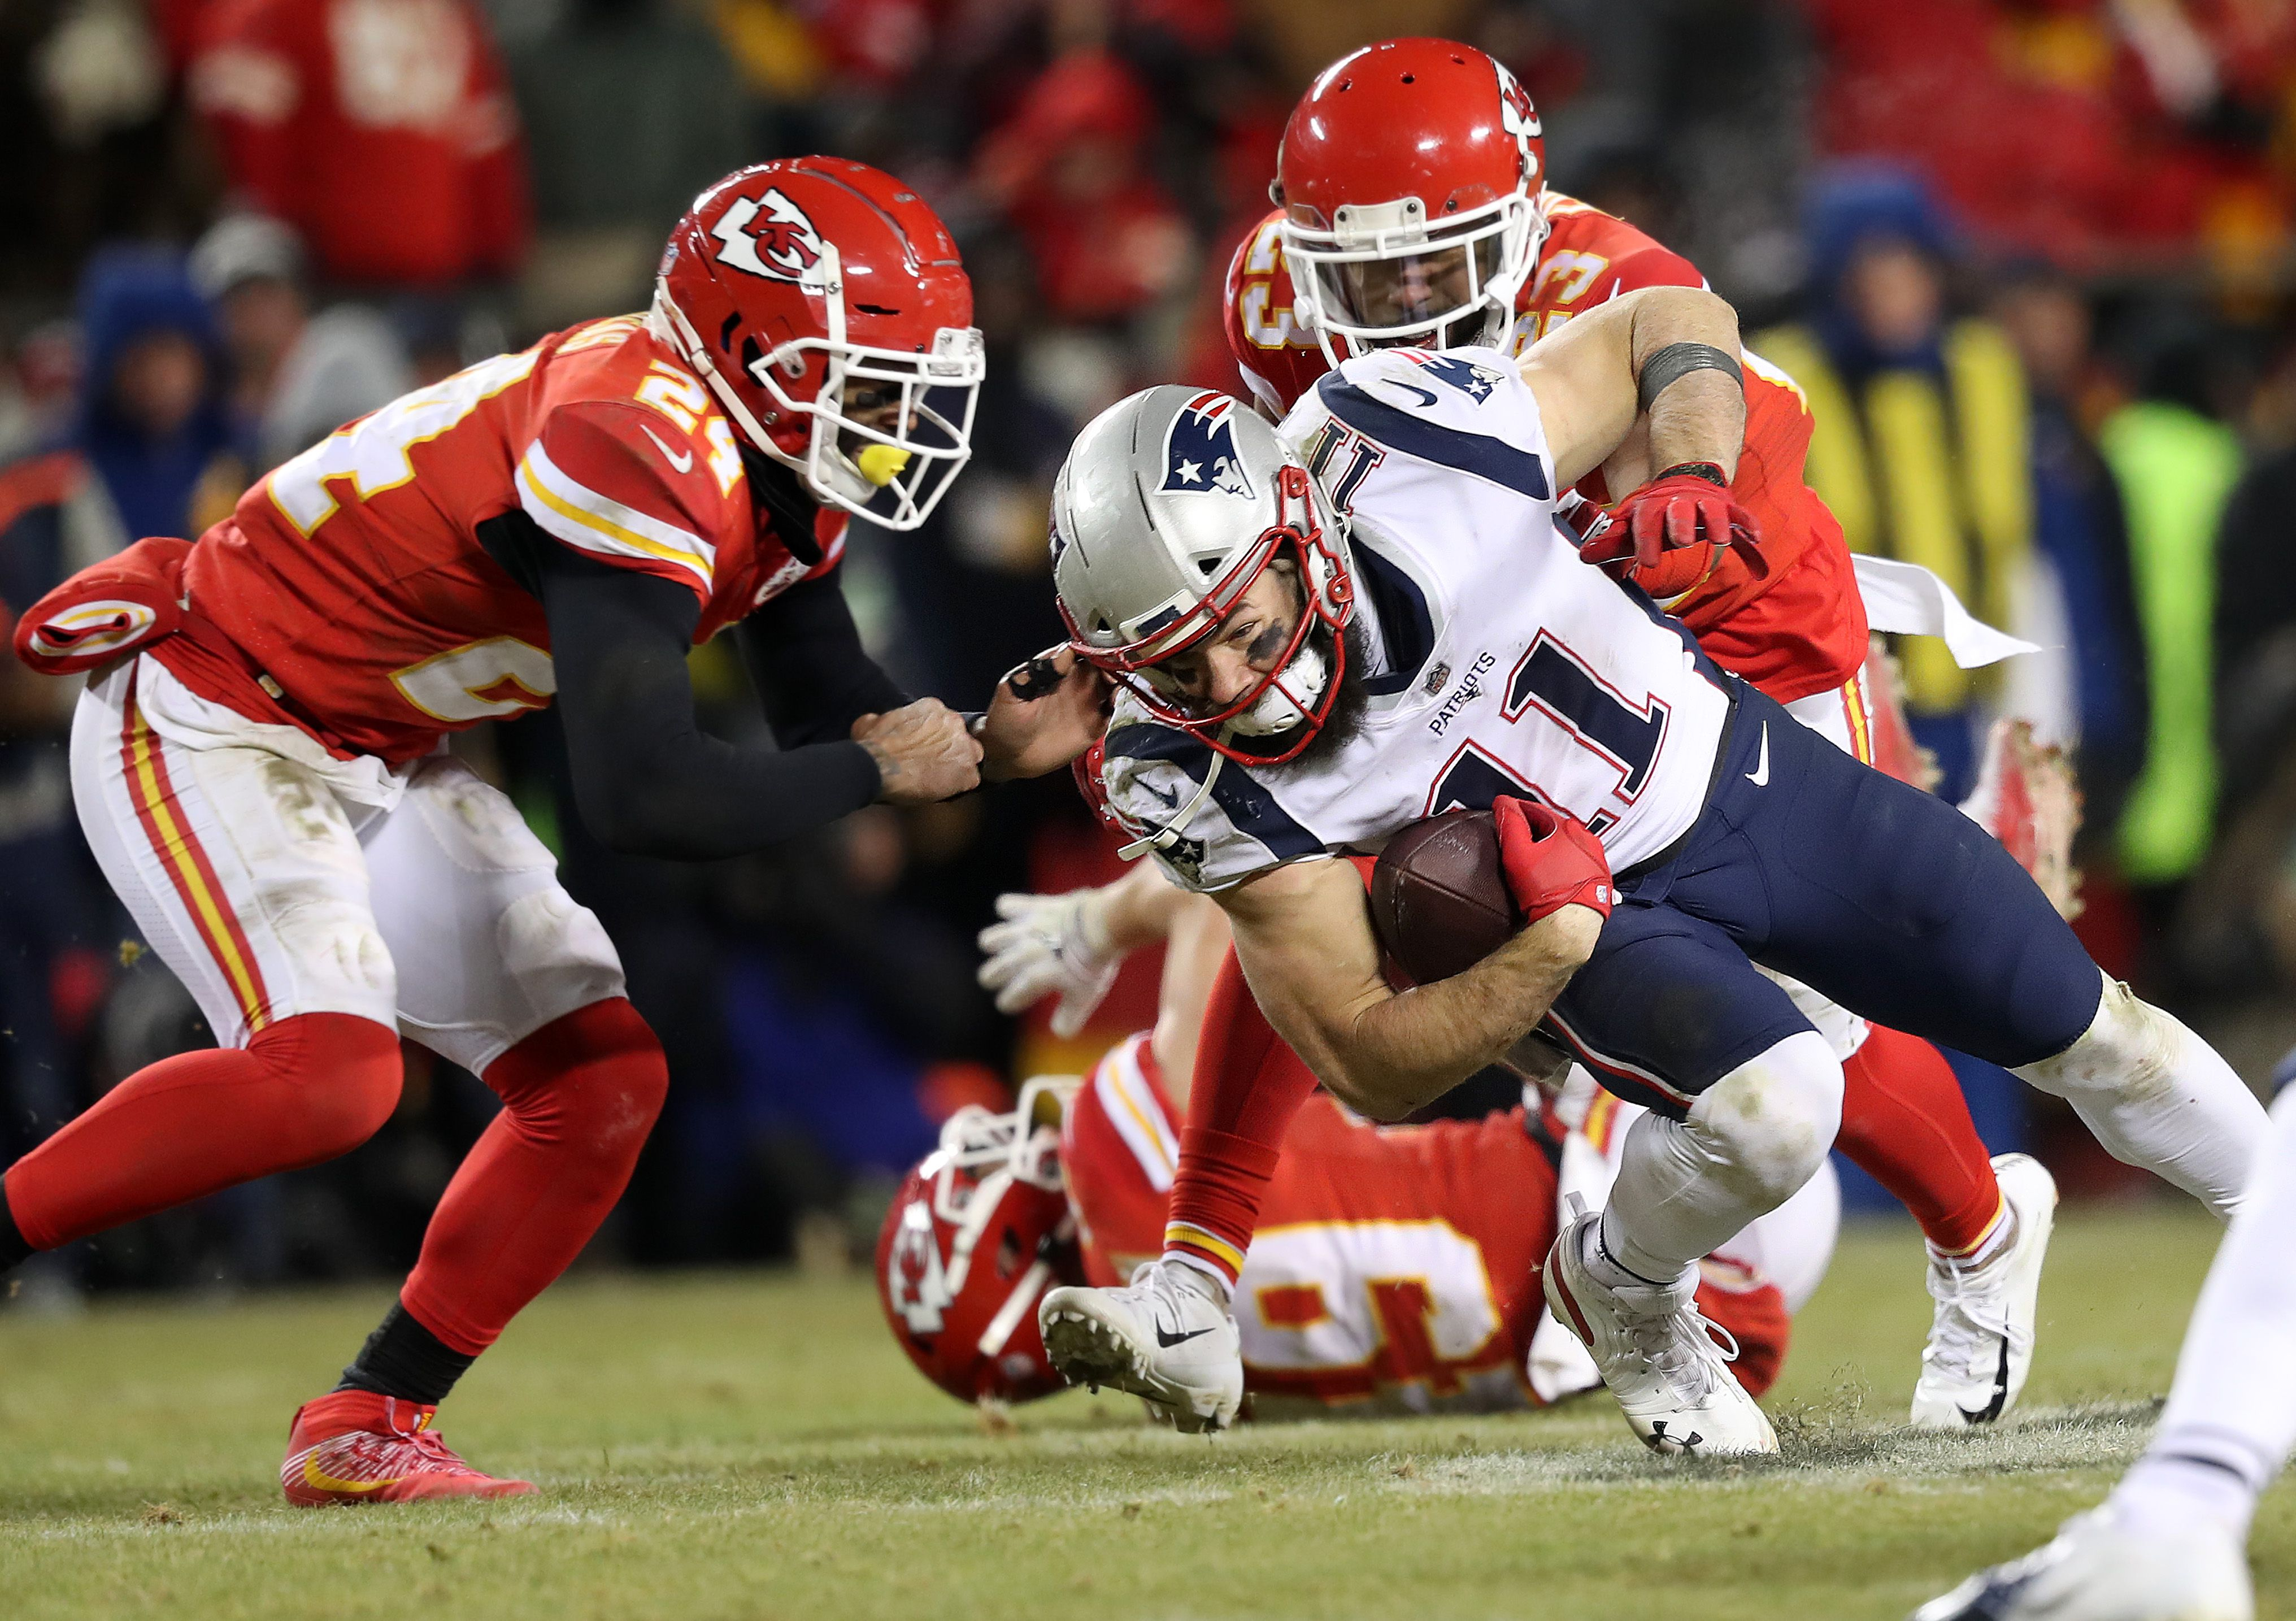 c826d1273 'Jules is going to make the play': Edelman and his prove-them-wrong  mentality came up big